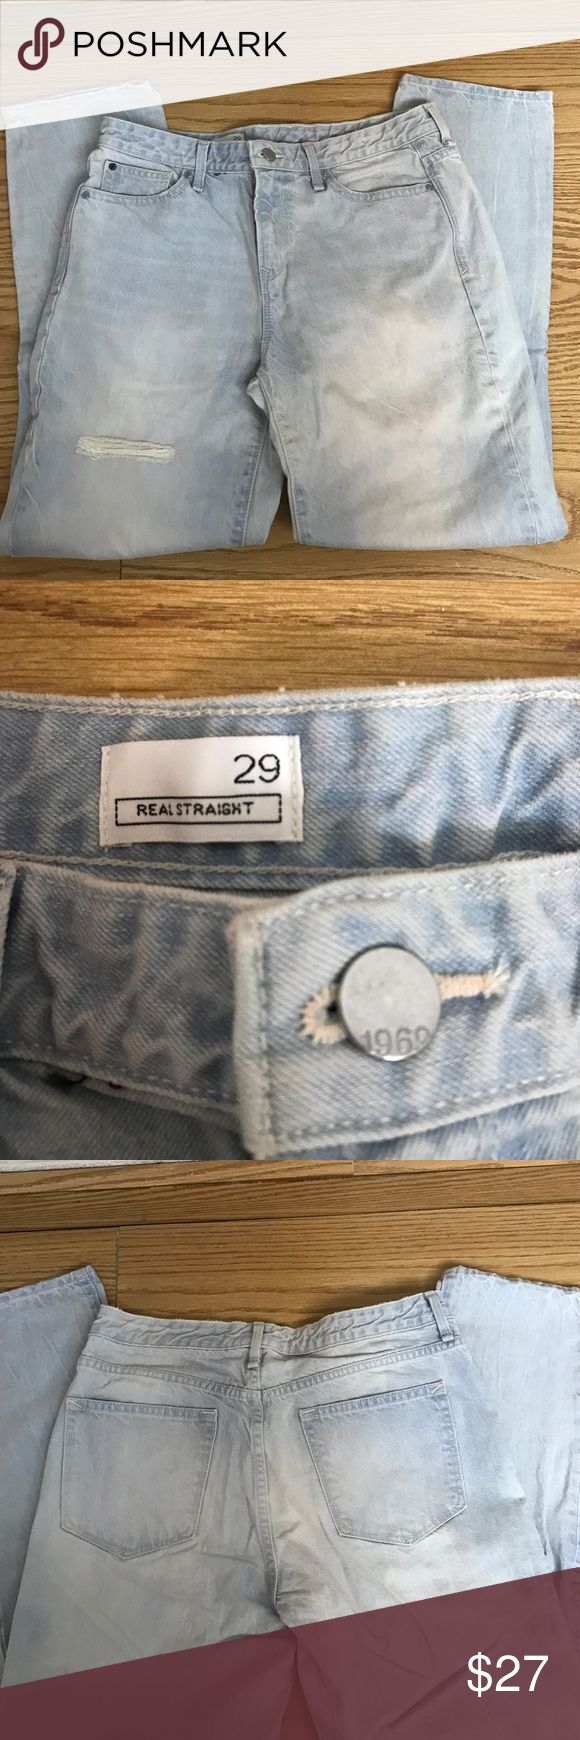 Gap Women's Straight Jeans Gap women's real straight jeans. Light wash, 100% cotton. Never been worn, brand new without tags. GAP Jeans Straight Leg